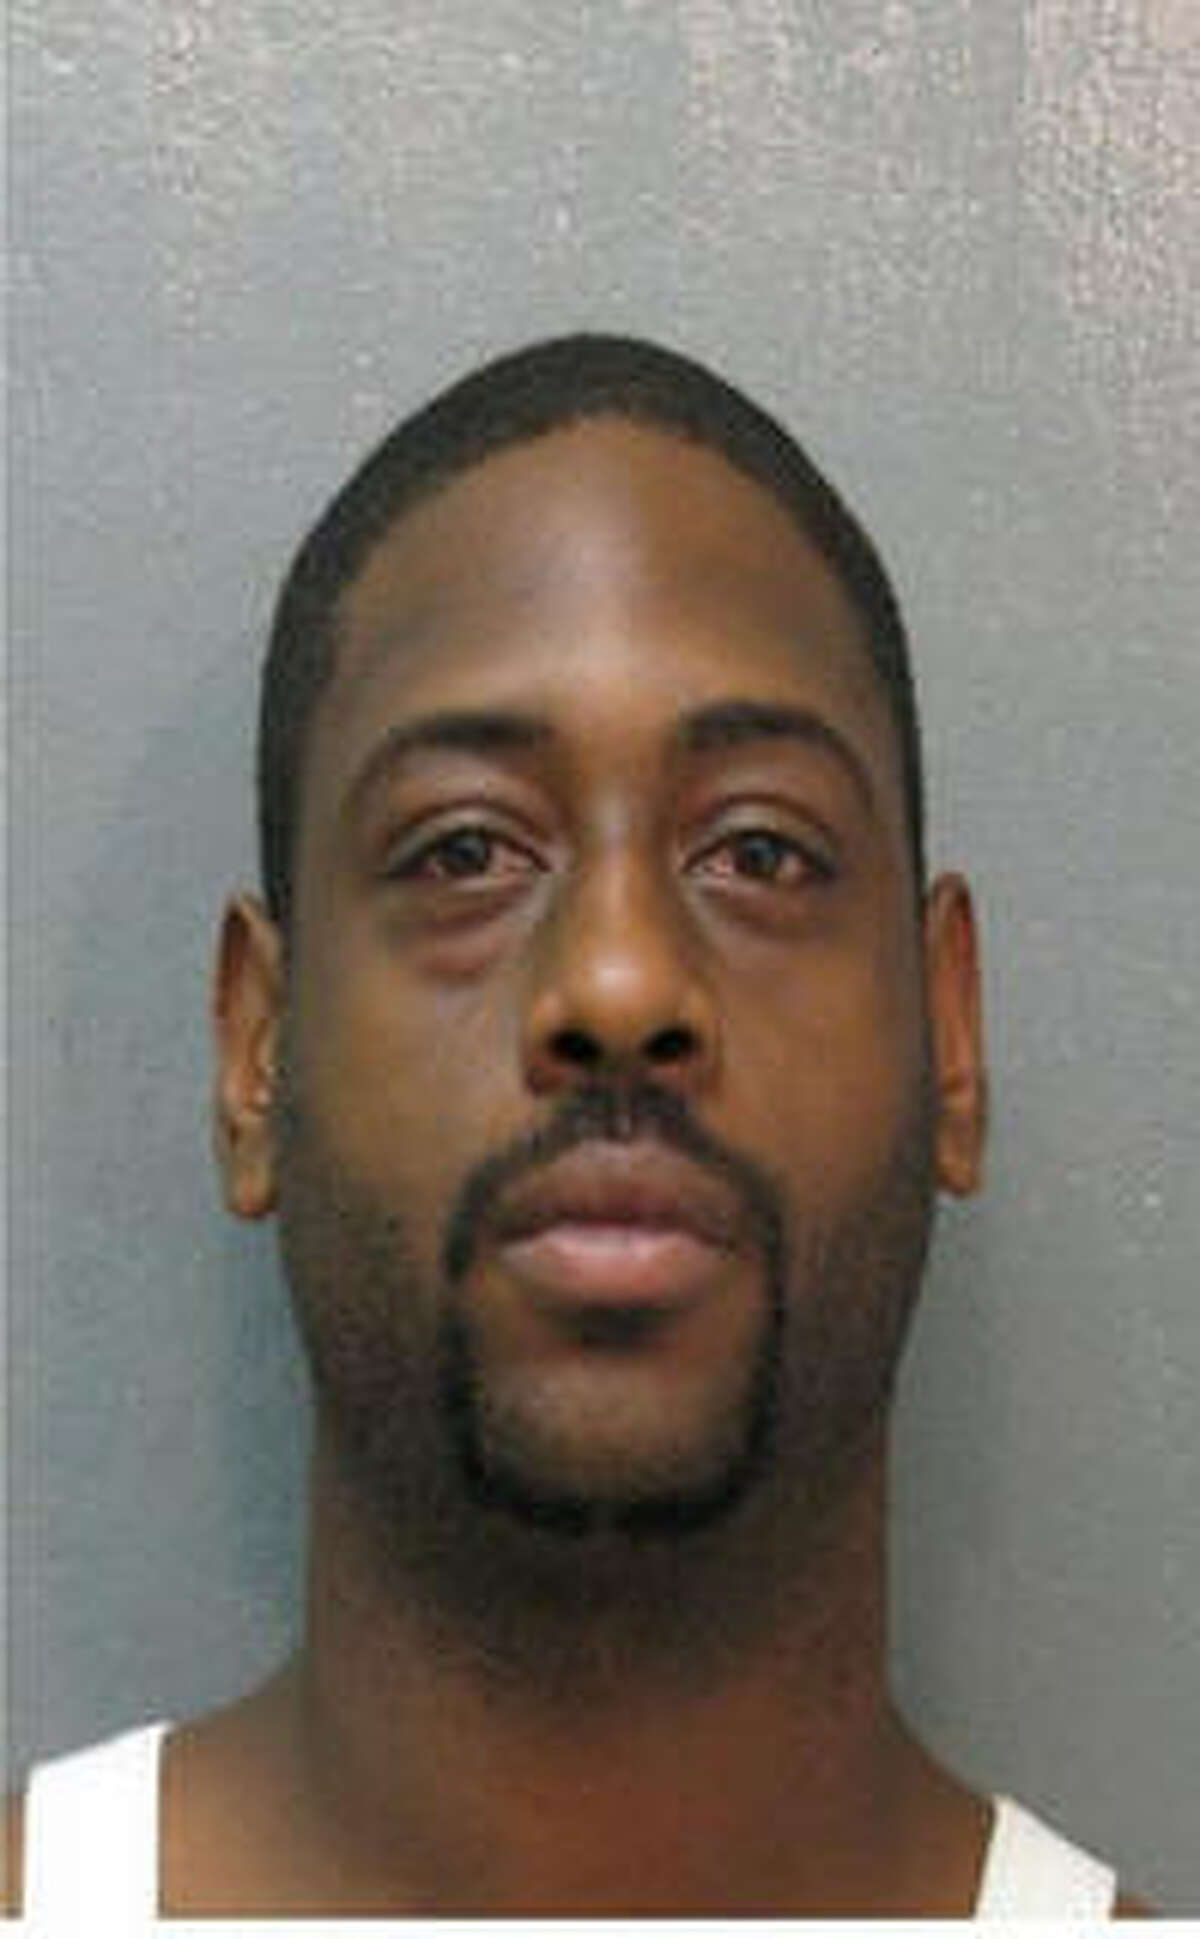 Carlton Lewis was arrested Aug. 29 in an East Harris County prostitution sting.